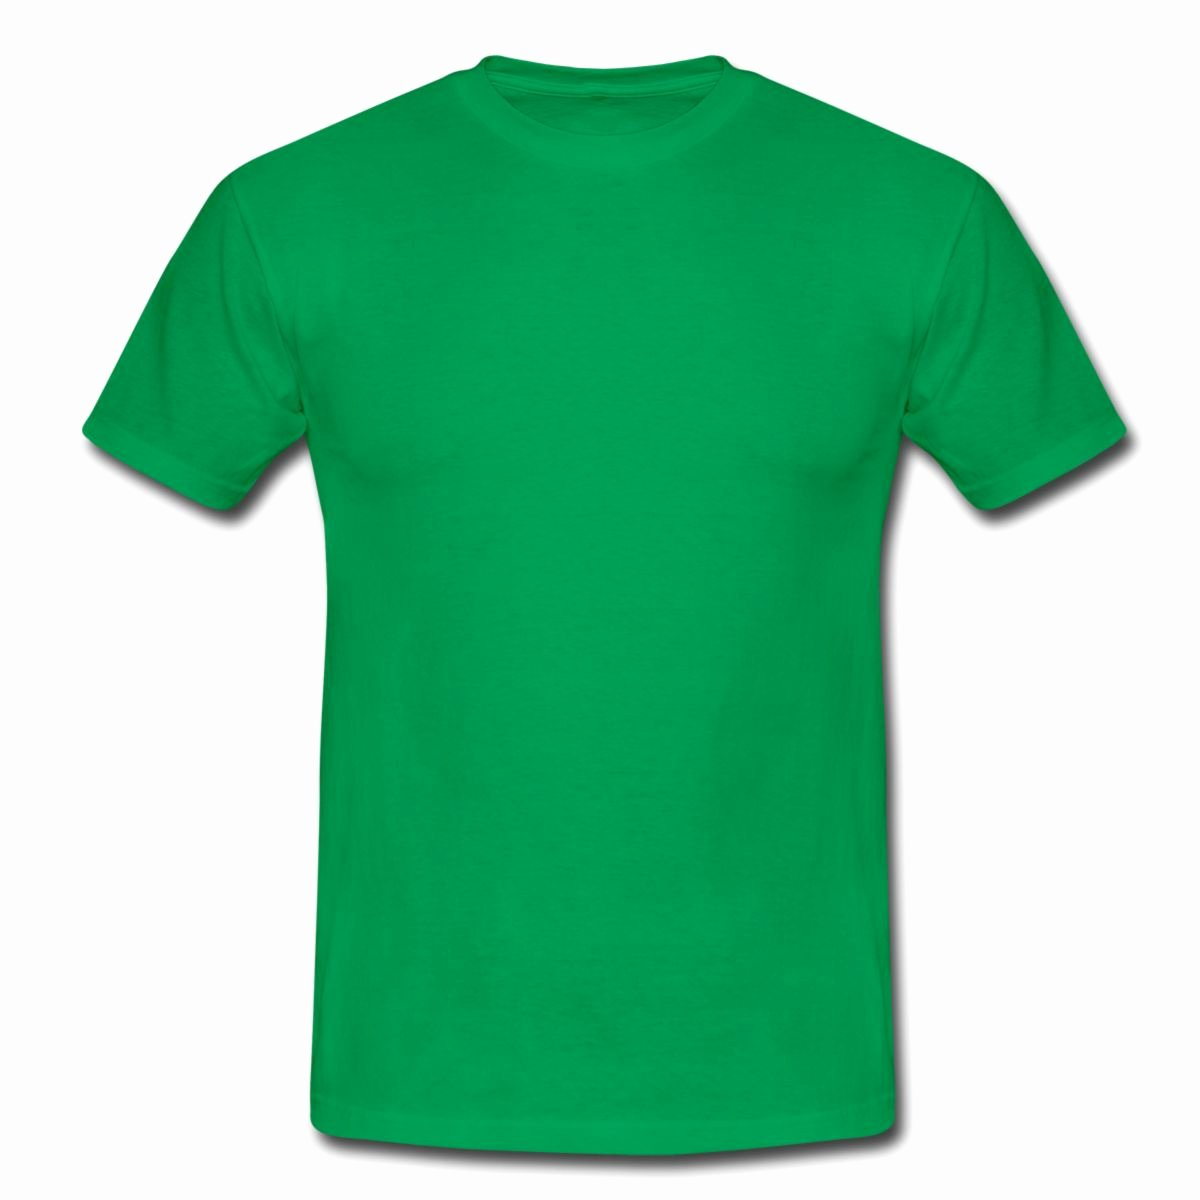 Green T Shirt Template Elegant the Gallery for Green T Shirt Back Template